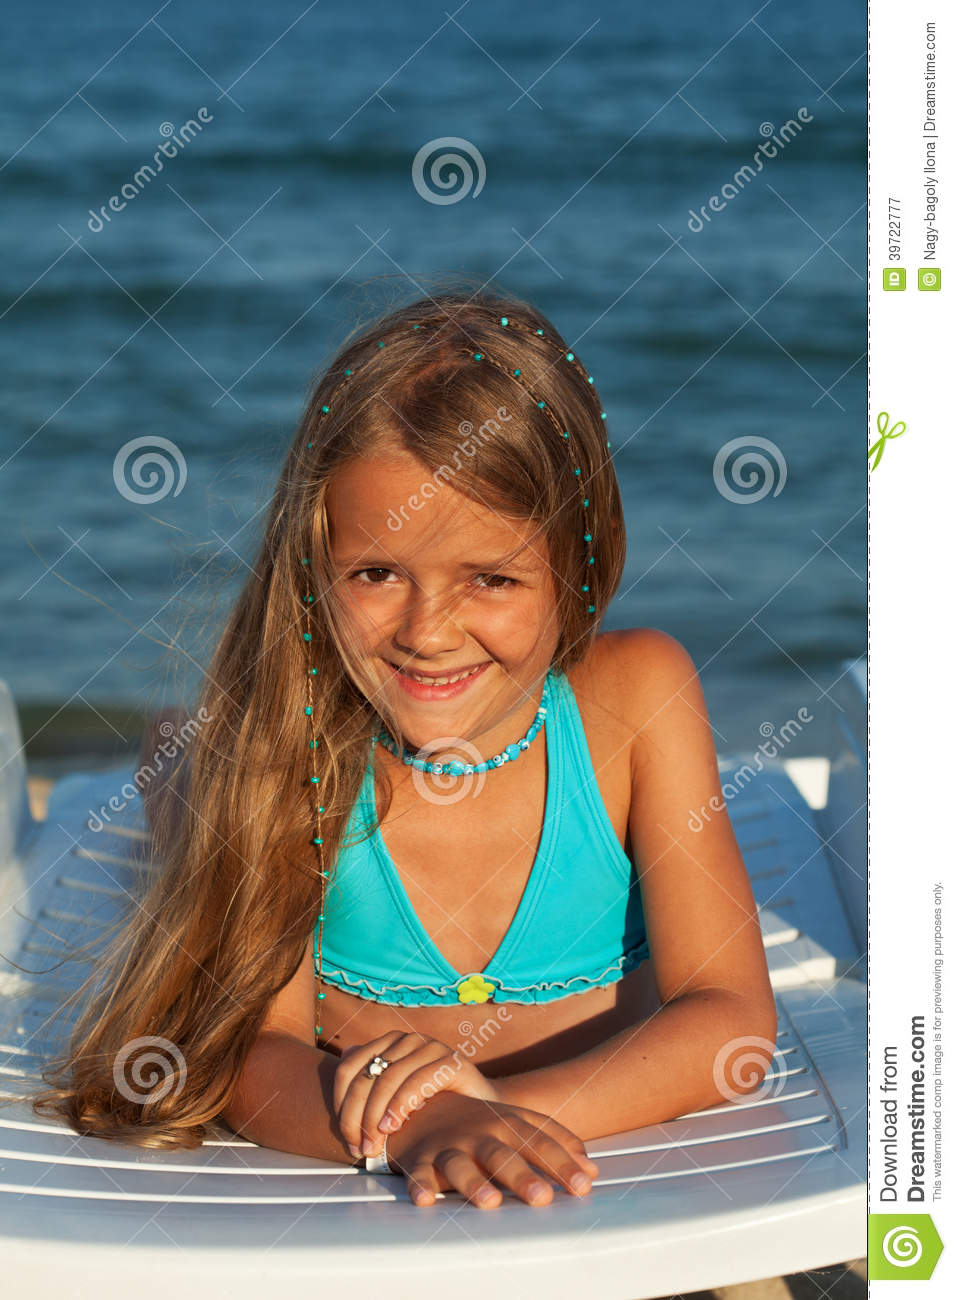 Little Girl In Bright Sunshine At The Seaside Stock Photo Image 39722777